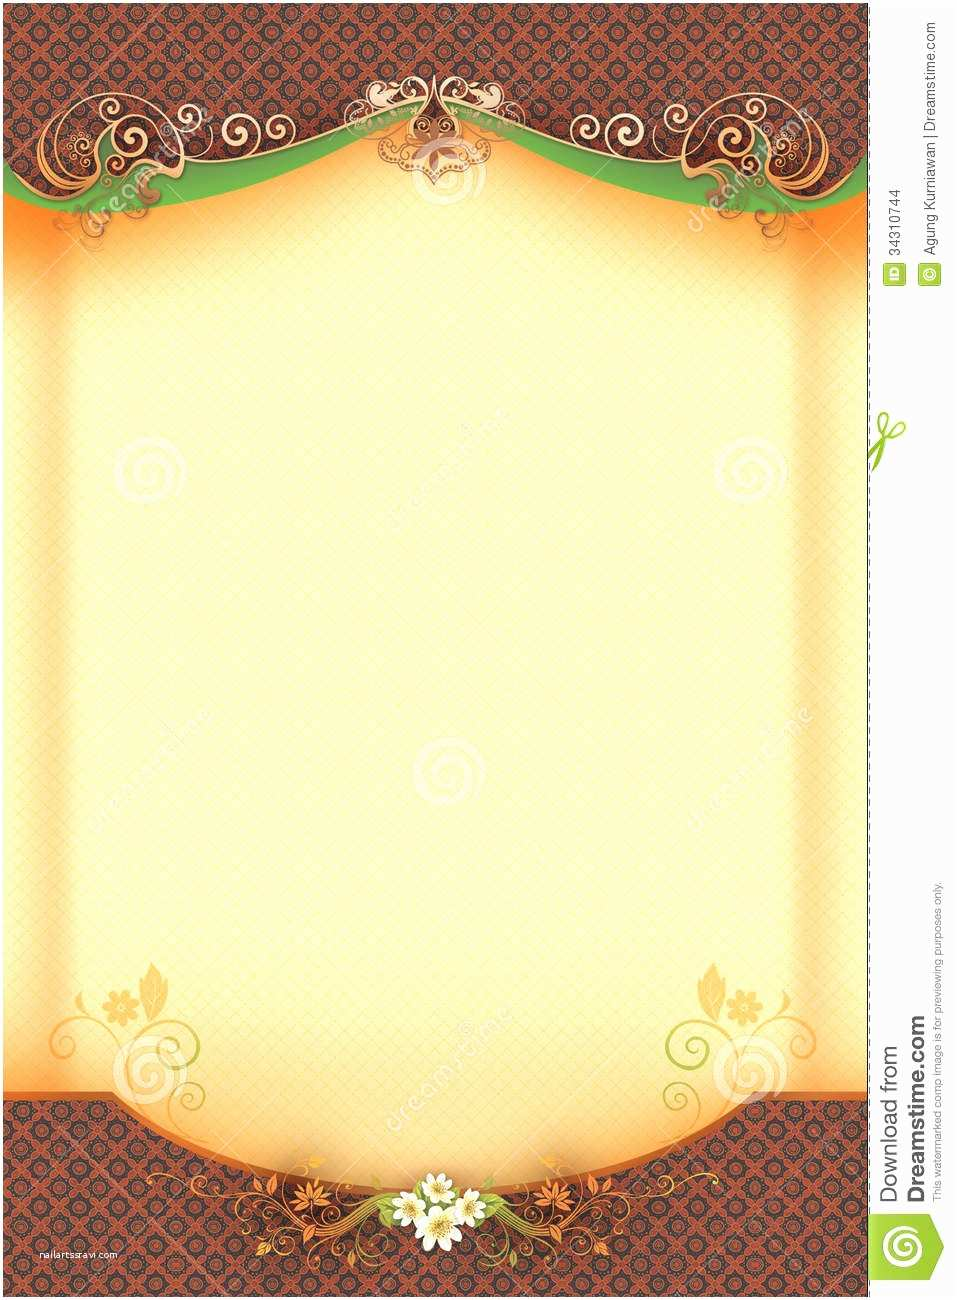 Background Images for Wedding Invitation Cards the Best Wedding Invitations for You Wedding Card